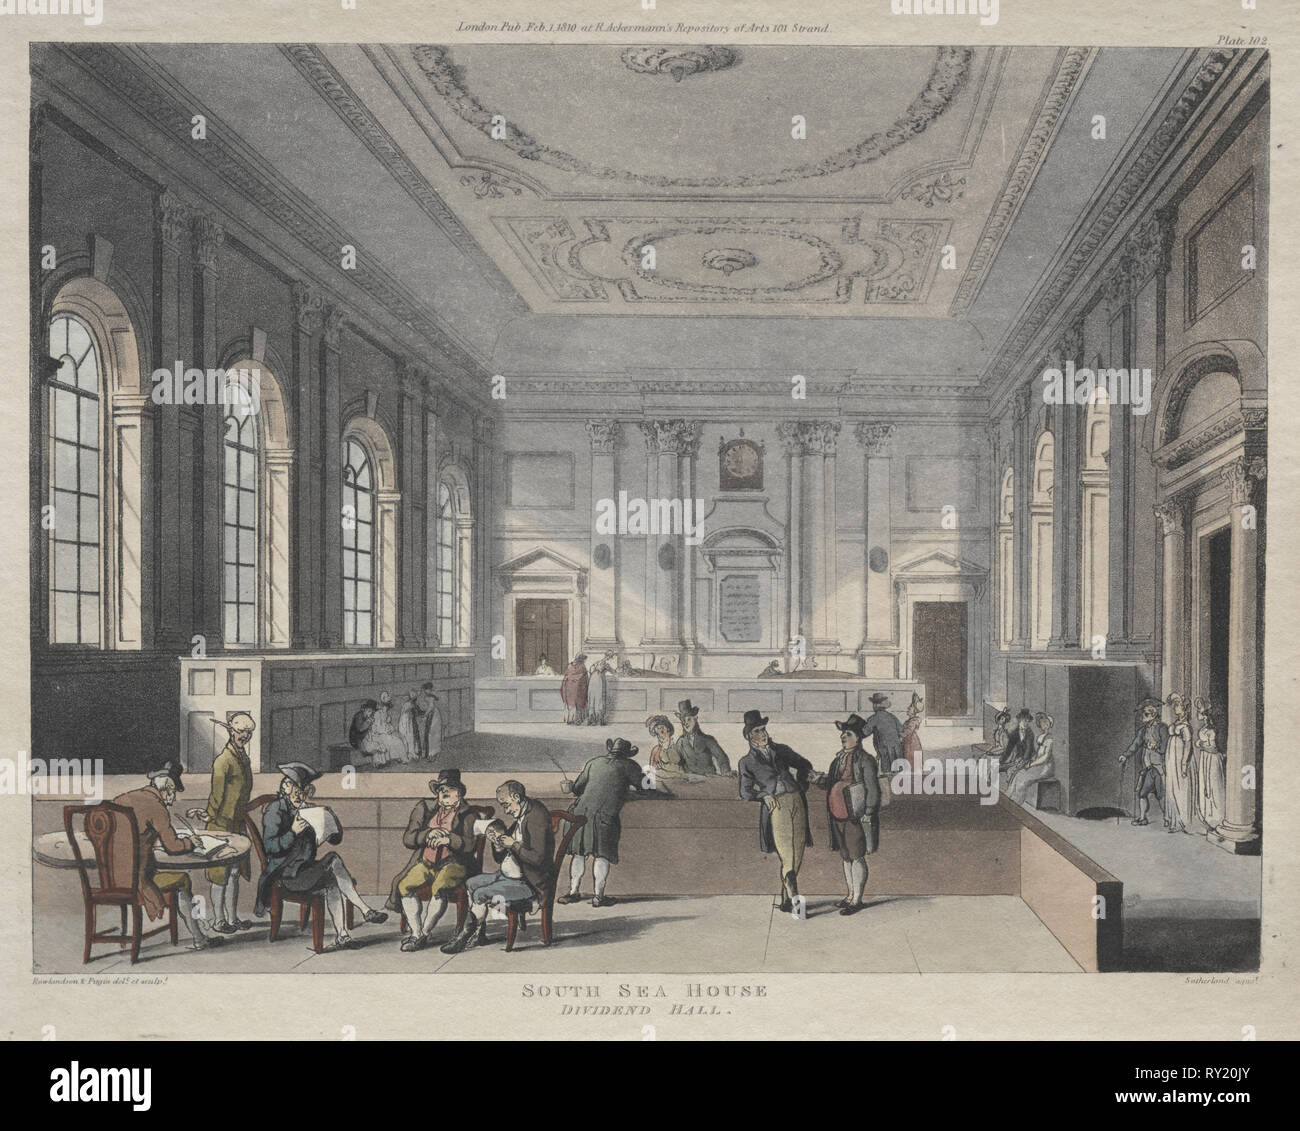 South Sea House, Dividend Hall, 1810. Thomas Rowlandson (British, 1756-1827), and Augustus Charles Pugin (British, 1762-1832). Etching - Stock Image